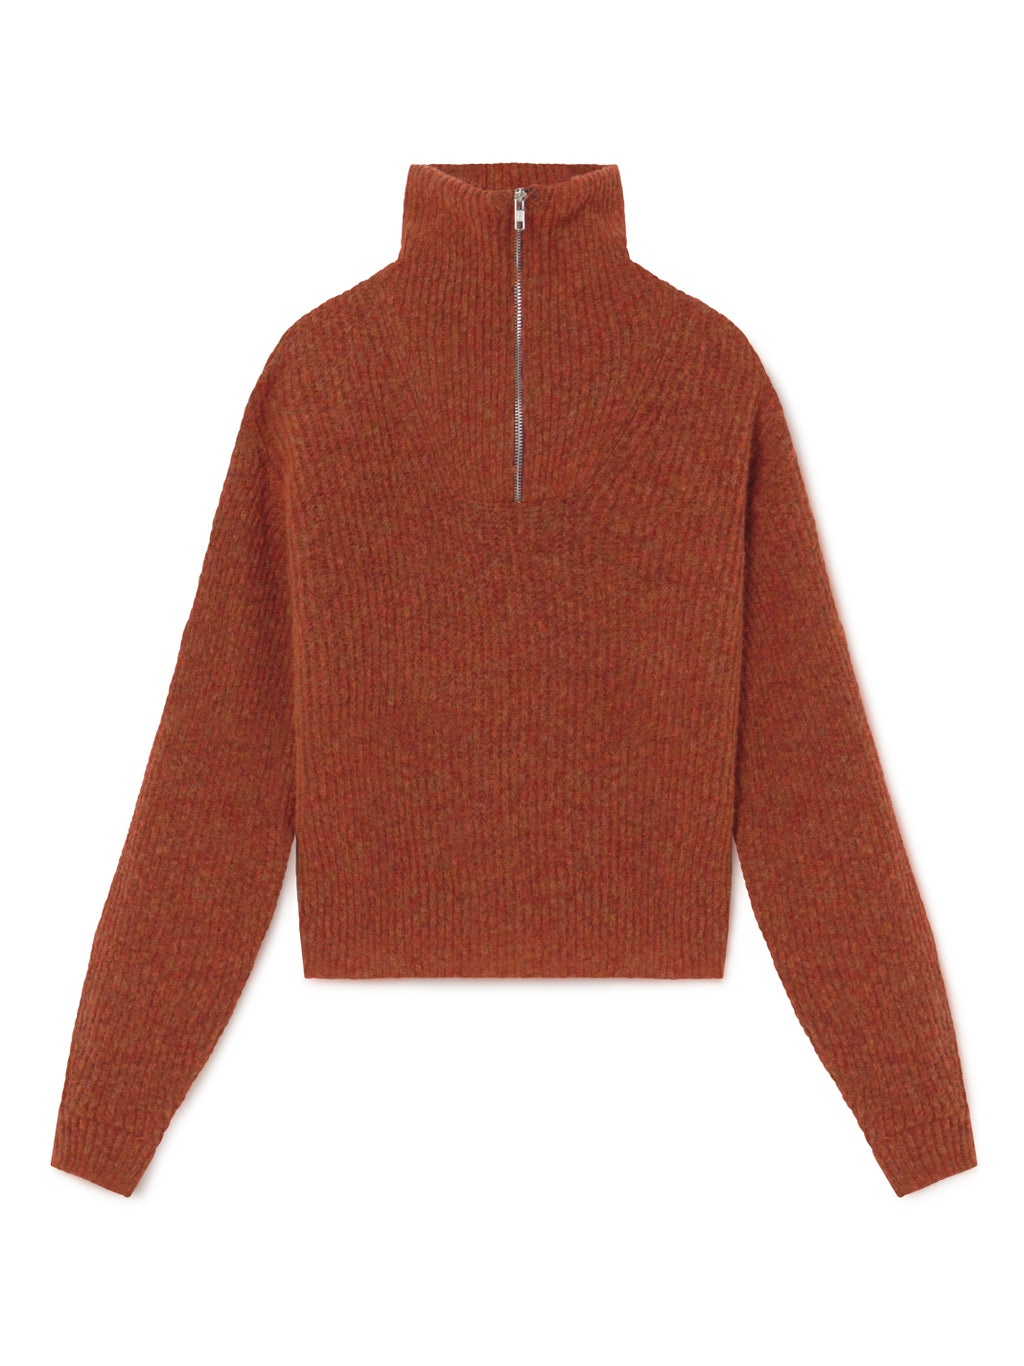 CERO - Half Zip Sweater